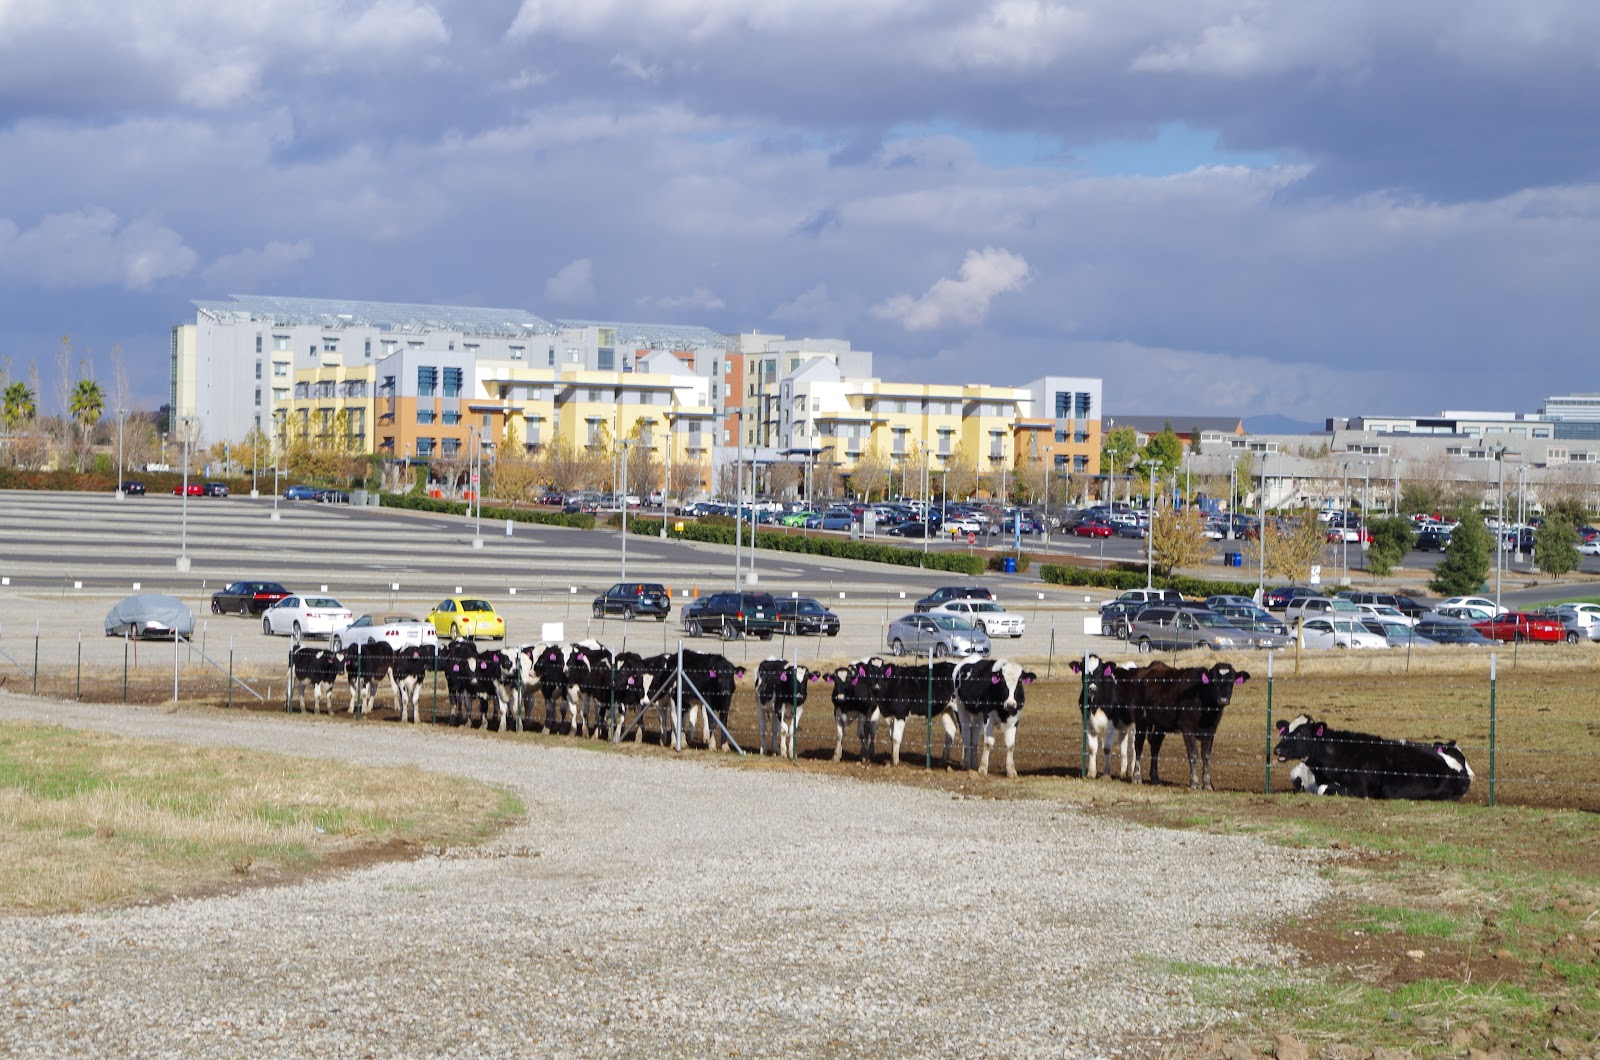 Cows_at_UC_Merced